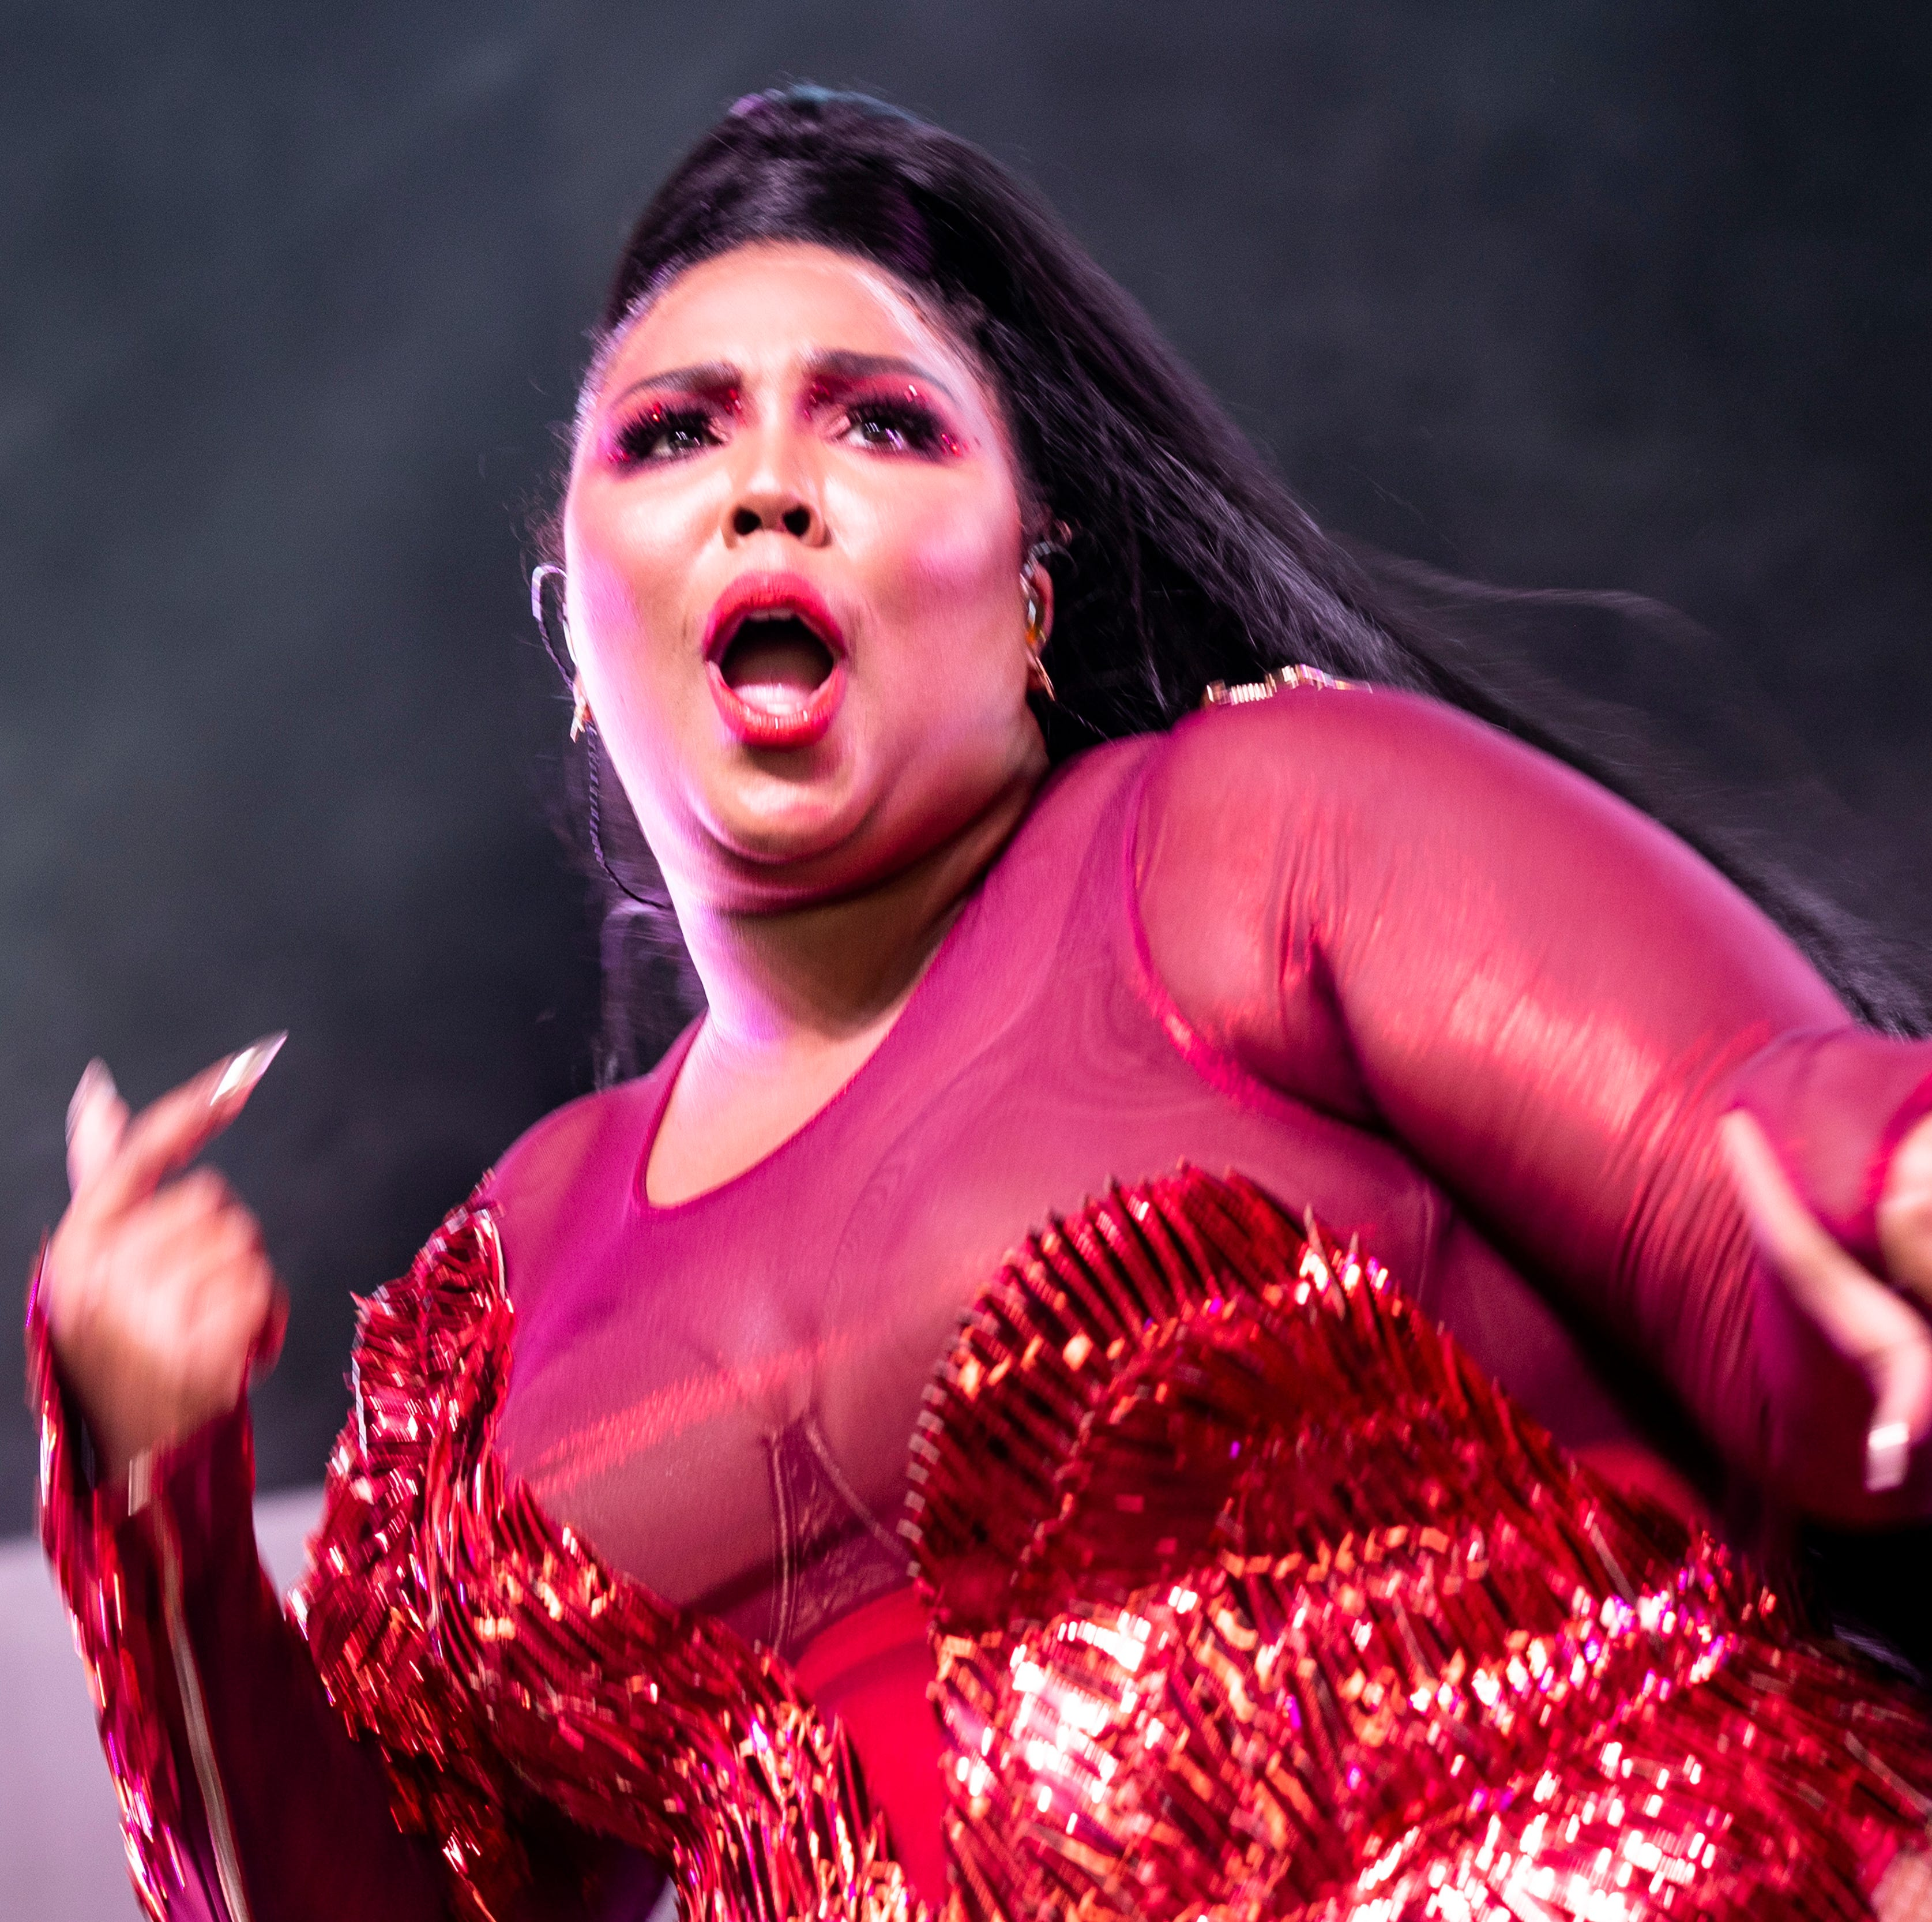 Lizzo will play Nashville's Ryman Auditorium on 'Cuz I Love You Too' tour